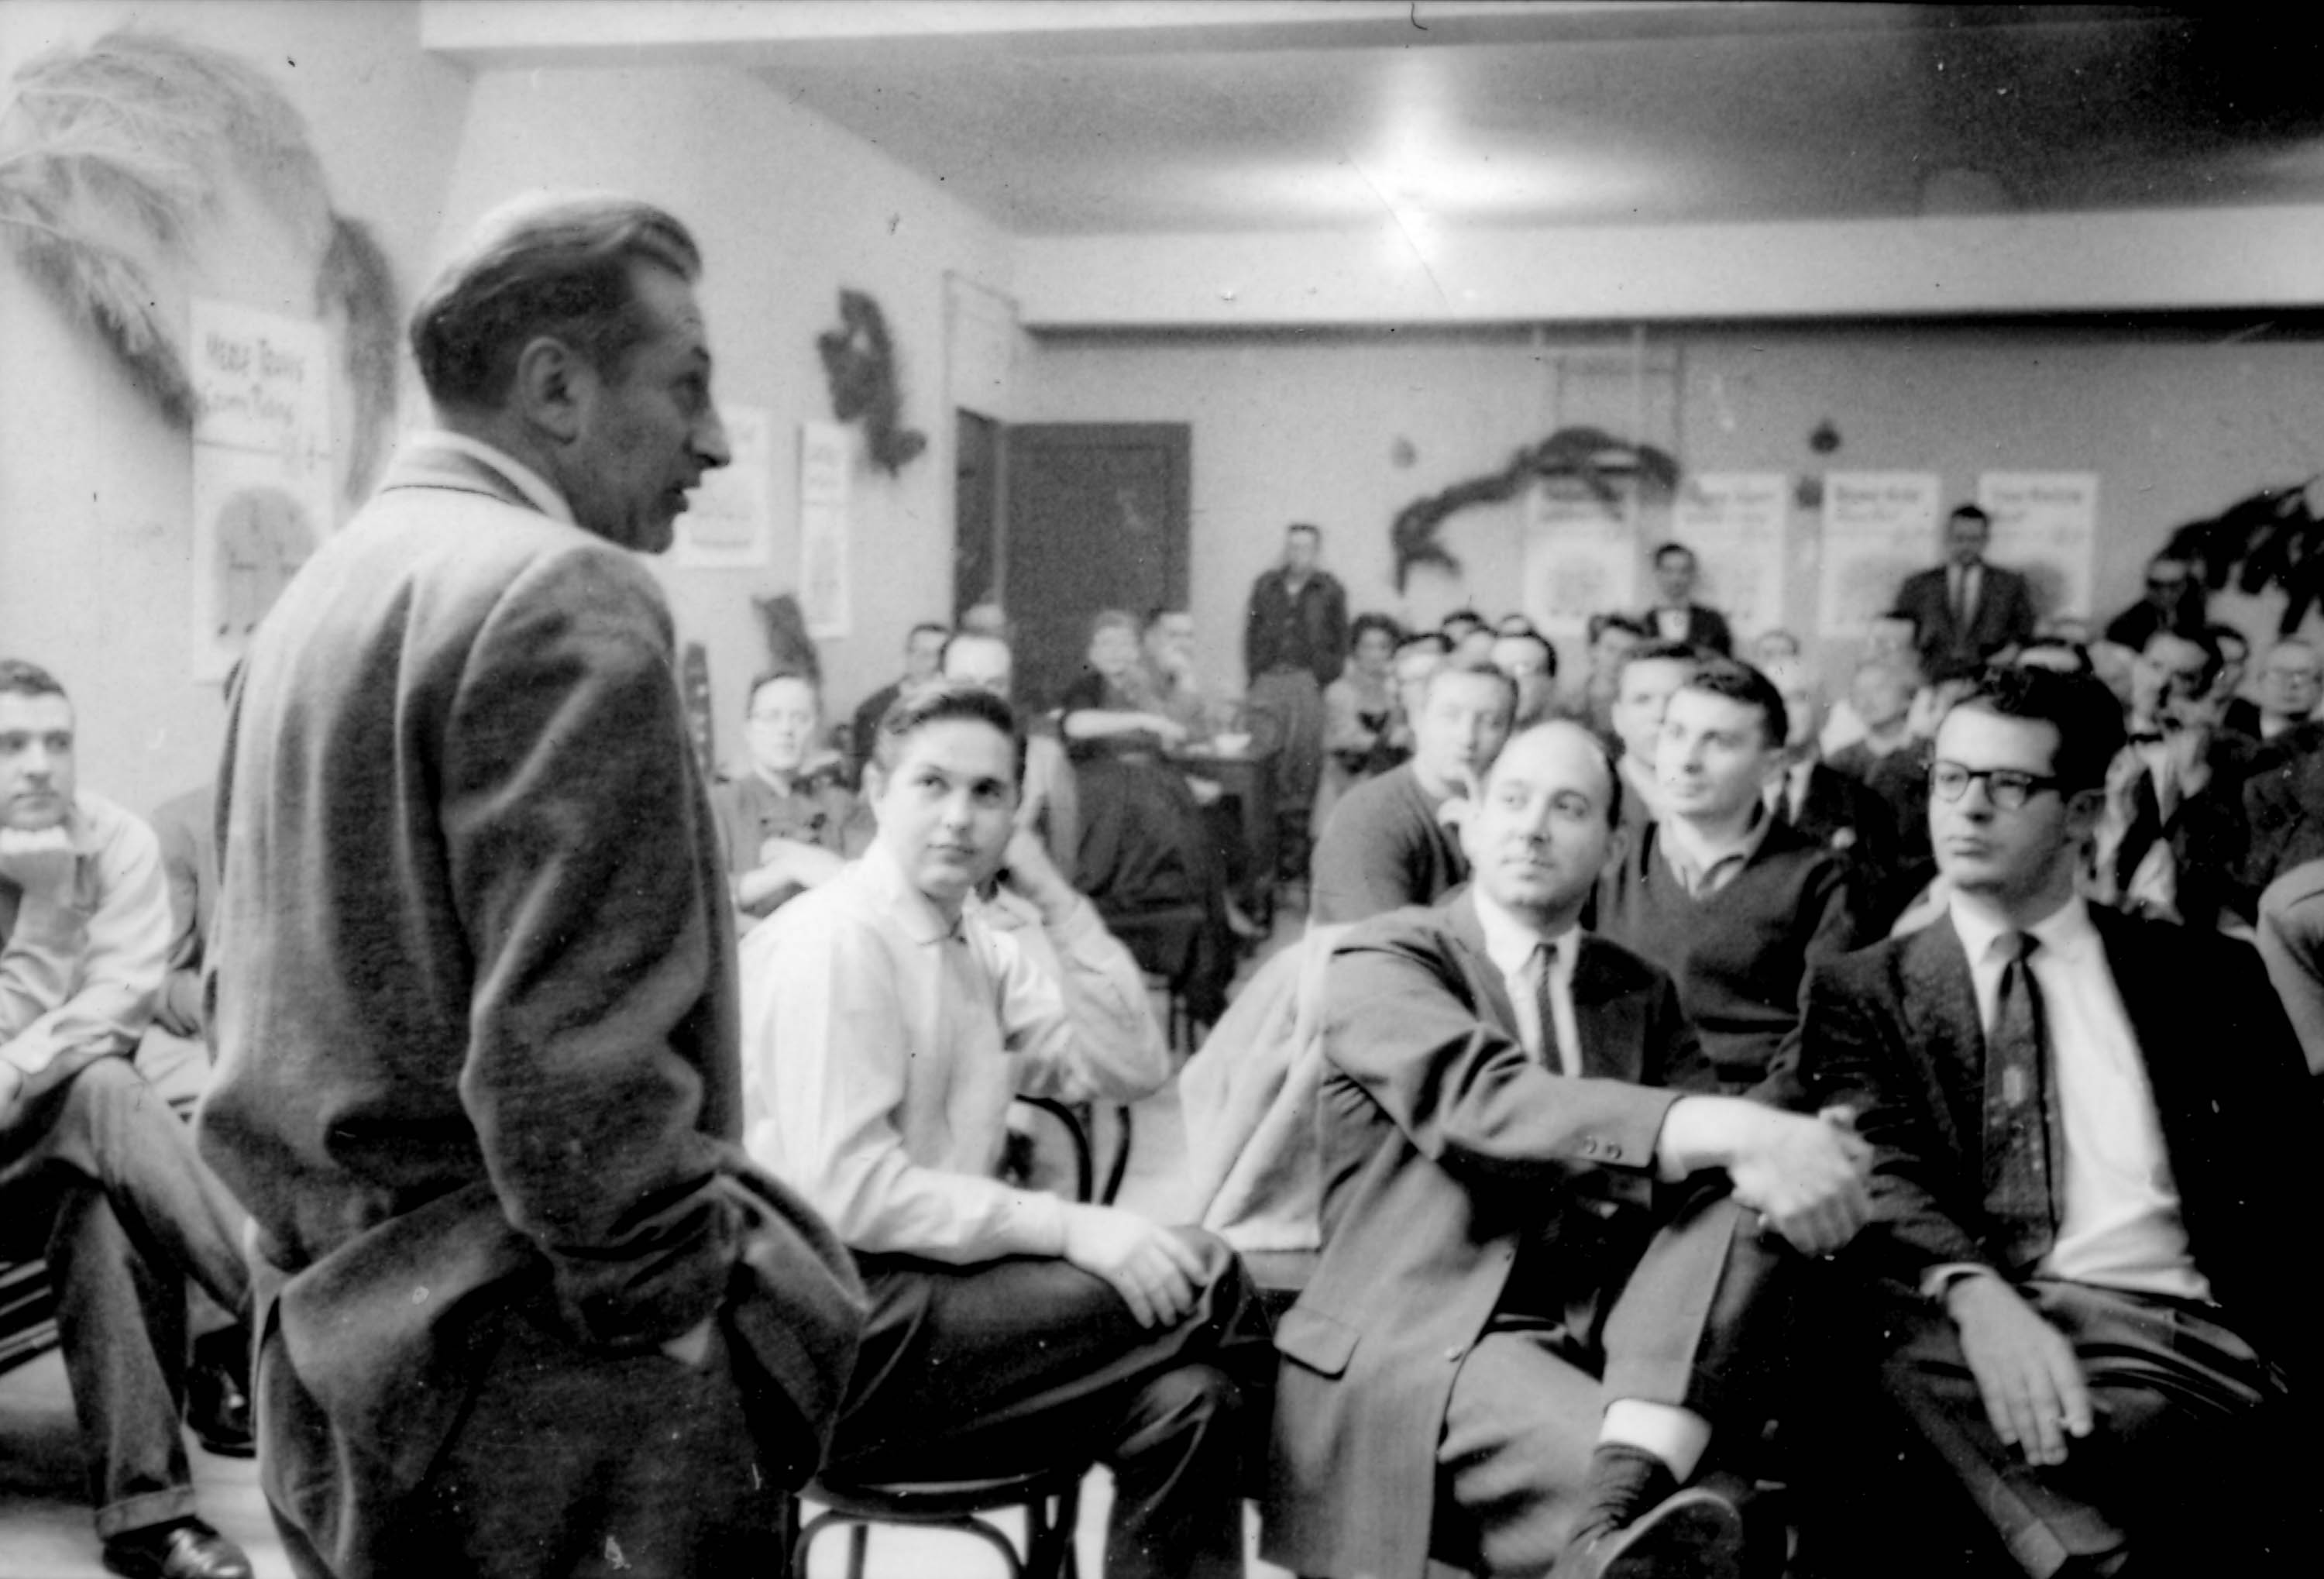 Studs Terkel addressing audience at the Old Town School of Folk Music opening night, Chicago, Illinois, December 1, 1957. <em>Chicago History Museum, ICHi-064028, Robert McCollough, photographer</em>